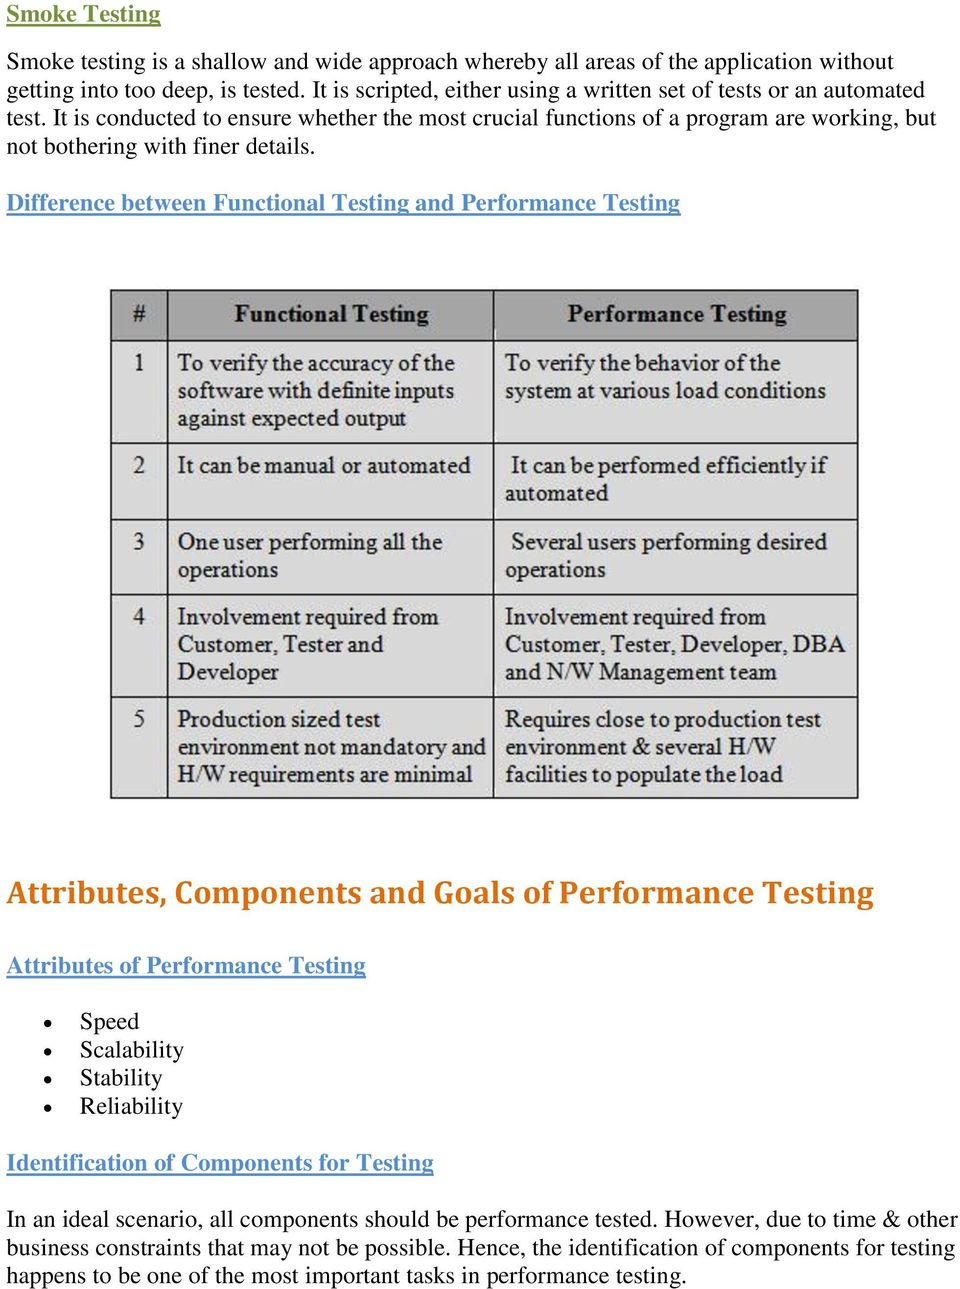 Difference between Functional Testing and Performance Testing Attributes, Components and Goals of Performance Testing Attributes of Performance Testing Speed Scalability Stability Reliability